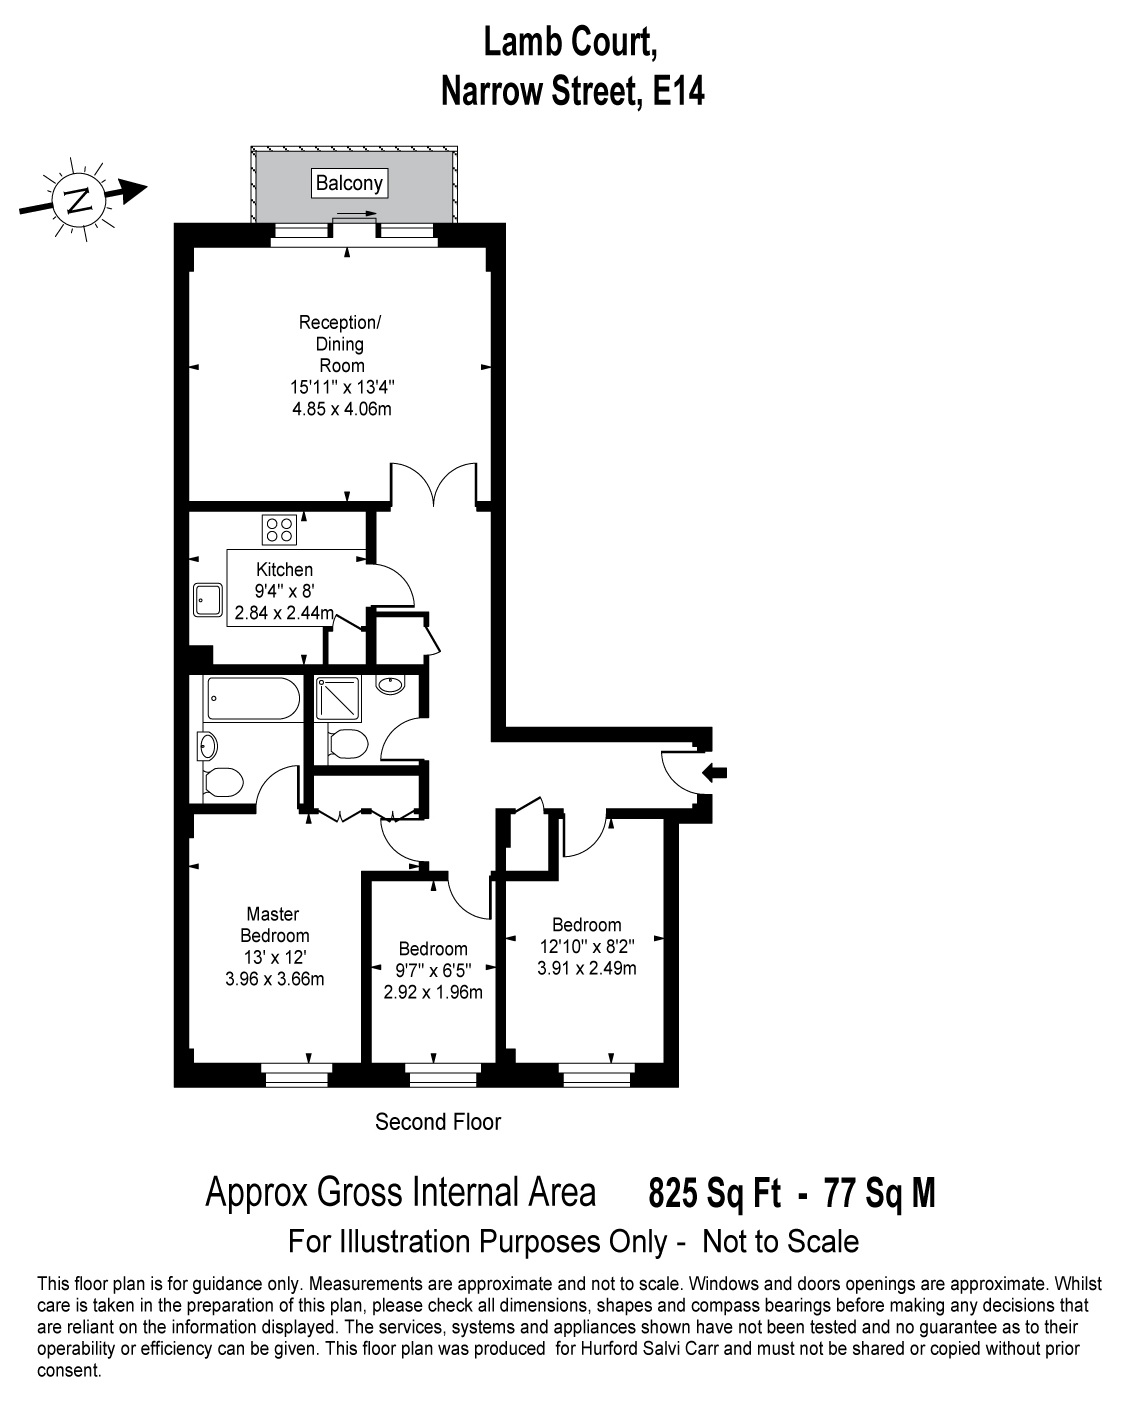 Lamb Court, 69 Narrow Street, E14 floorplan